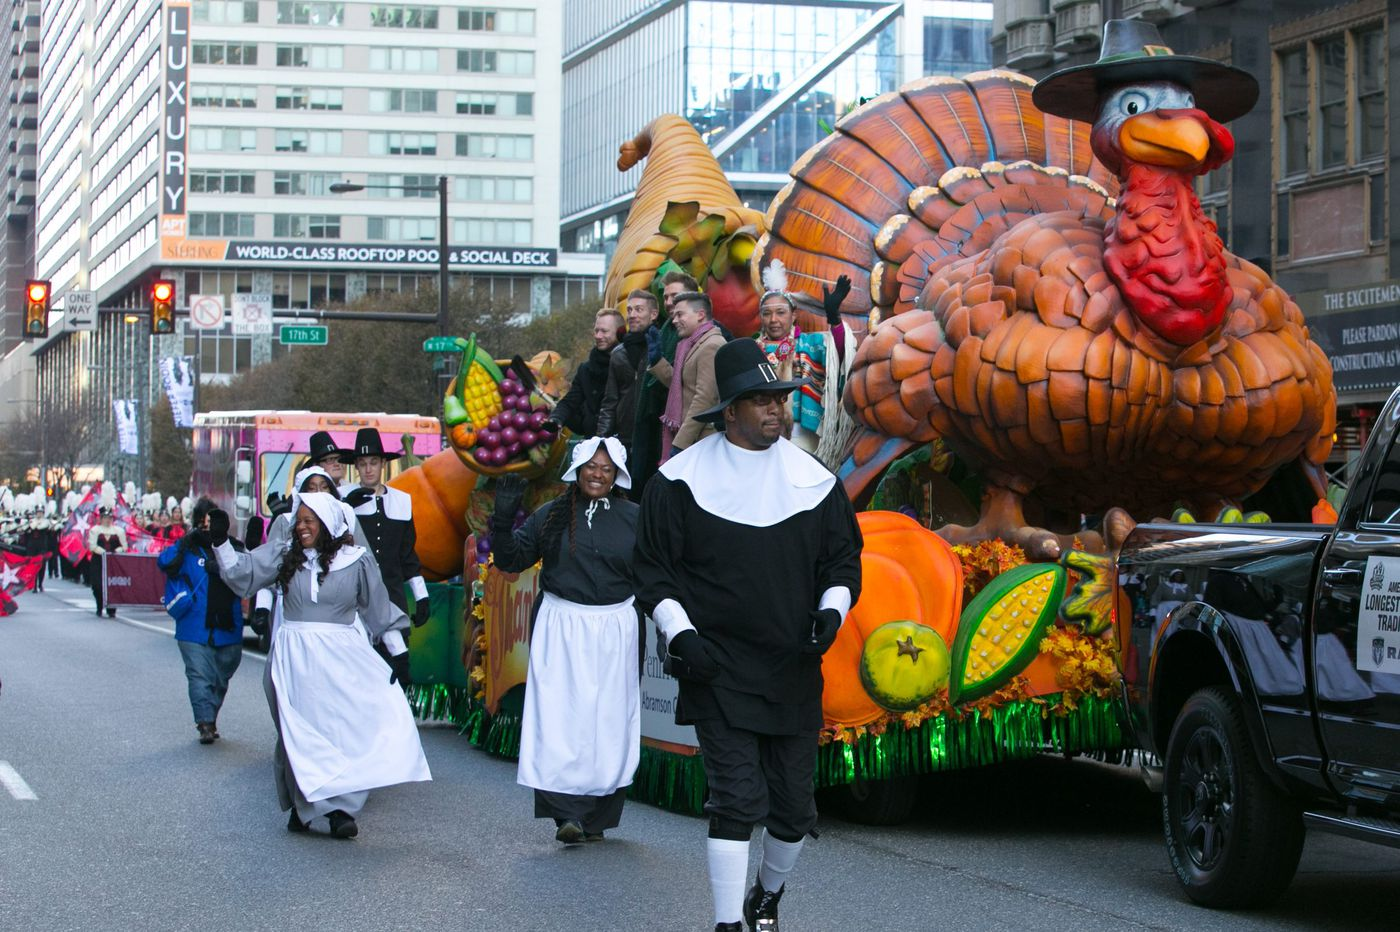 Thanksgiving Day parade in Philadelphia: Route, road closures and other details